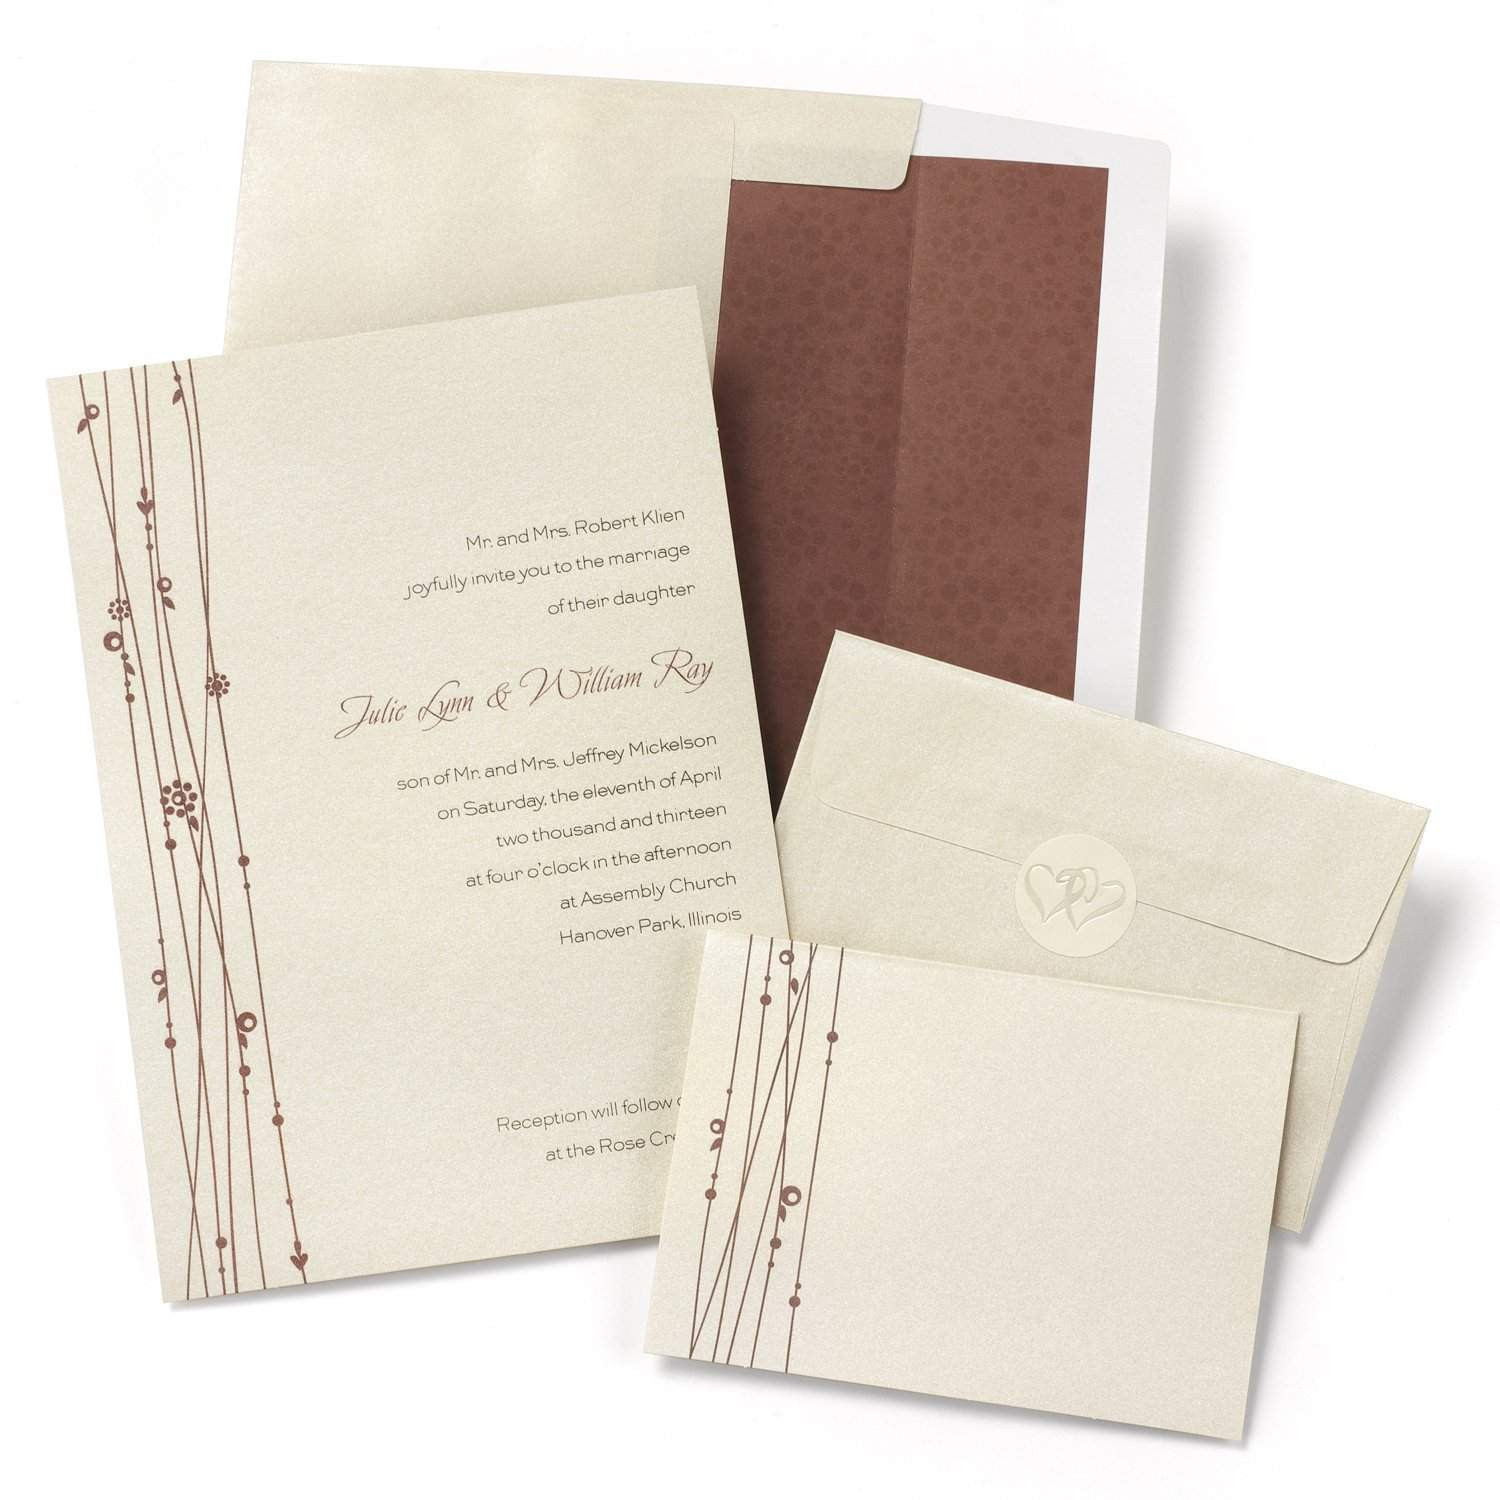 Best ideas about DIY Invitations Kits . Save or Pin Top 10 Best Cheap DIY Wedding Invitations Now.